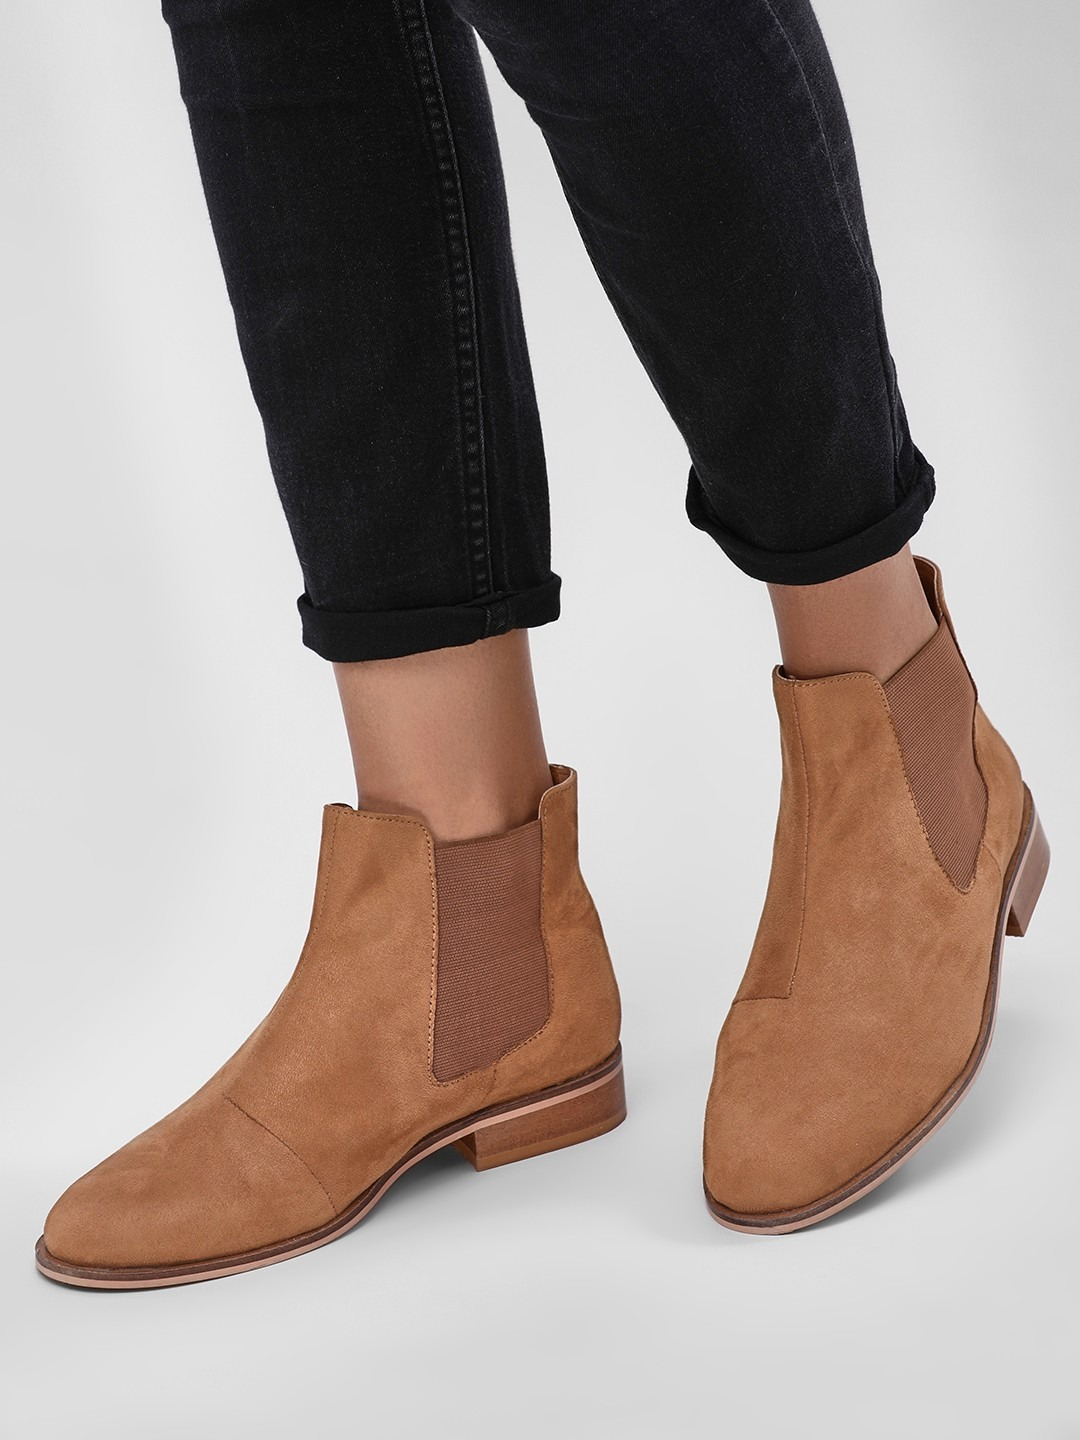 17-types-of-boots-Chelsea-Boots